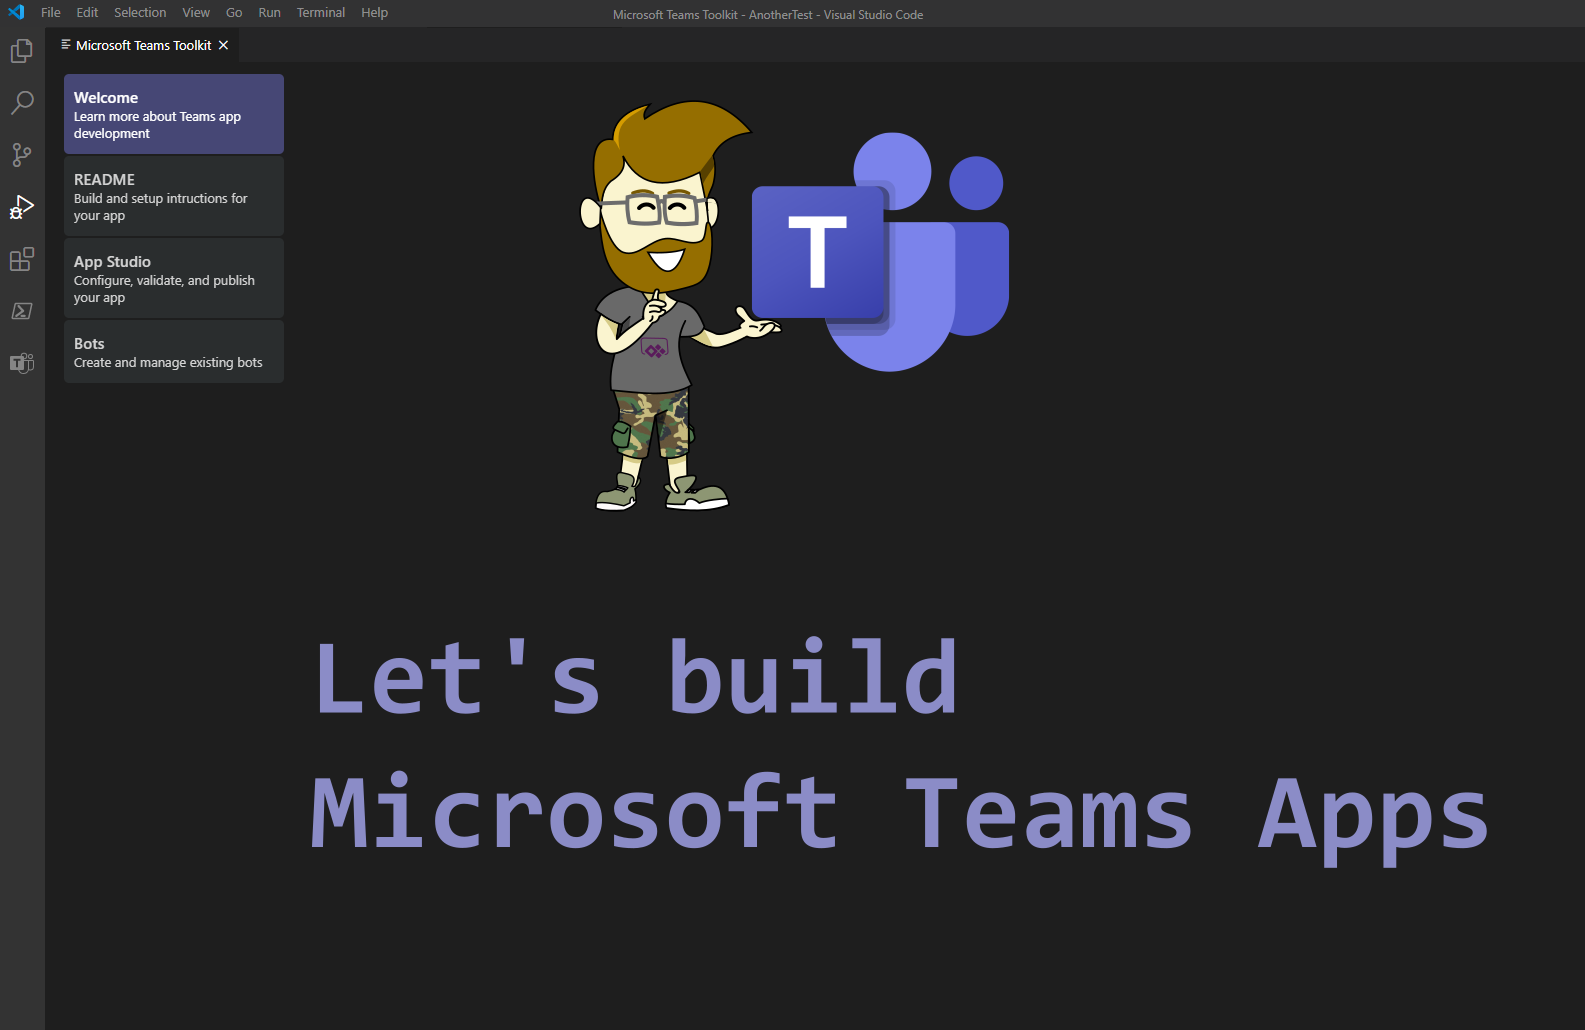 Building Teams Apps